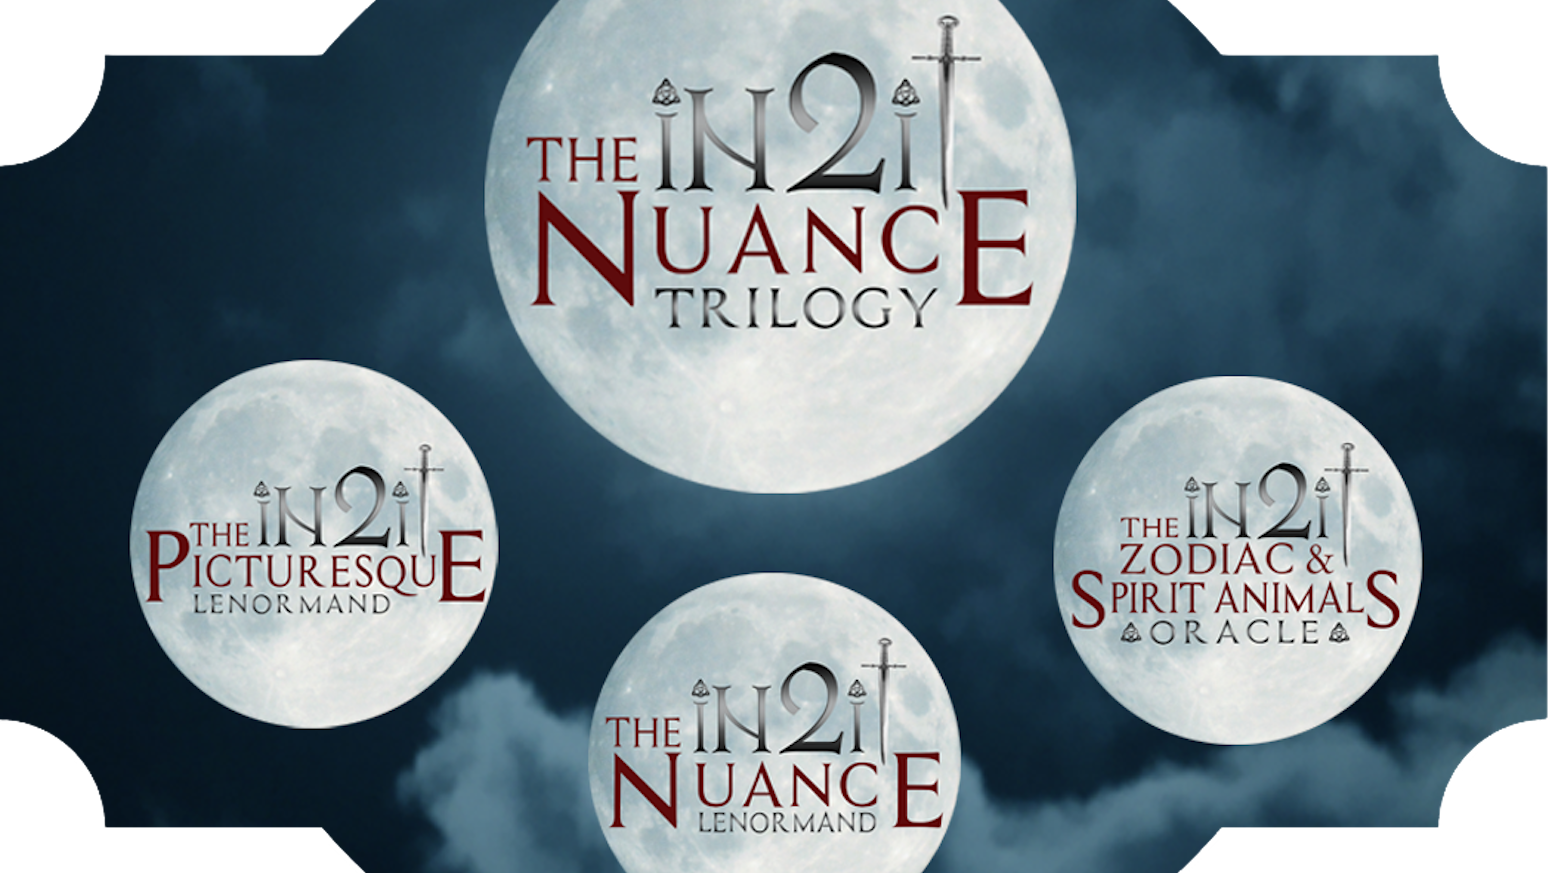 iN2IT Nuance Oracle Trio by Kimberley Fisher — Kickstarter